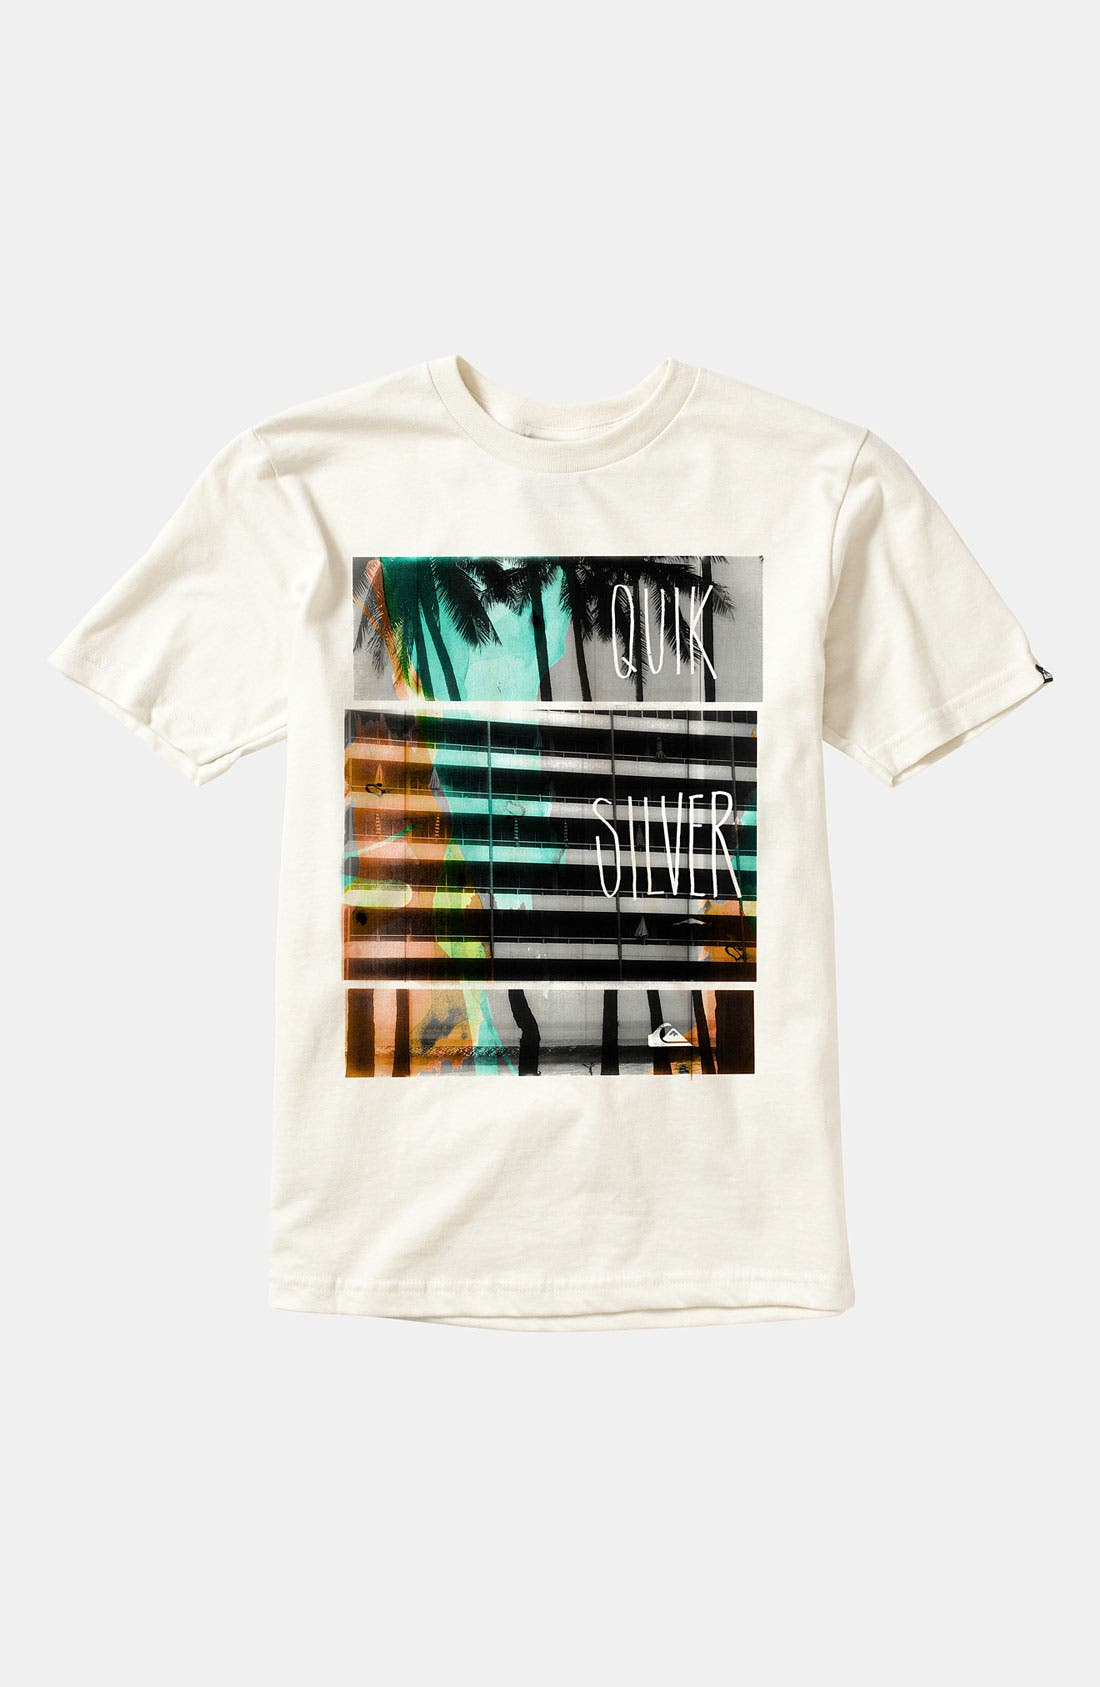 Alternate Image 1 Selected - Quiksilver 'High Rise' T-Shirt (Big Boys)